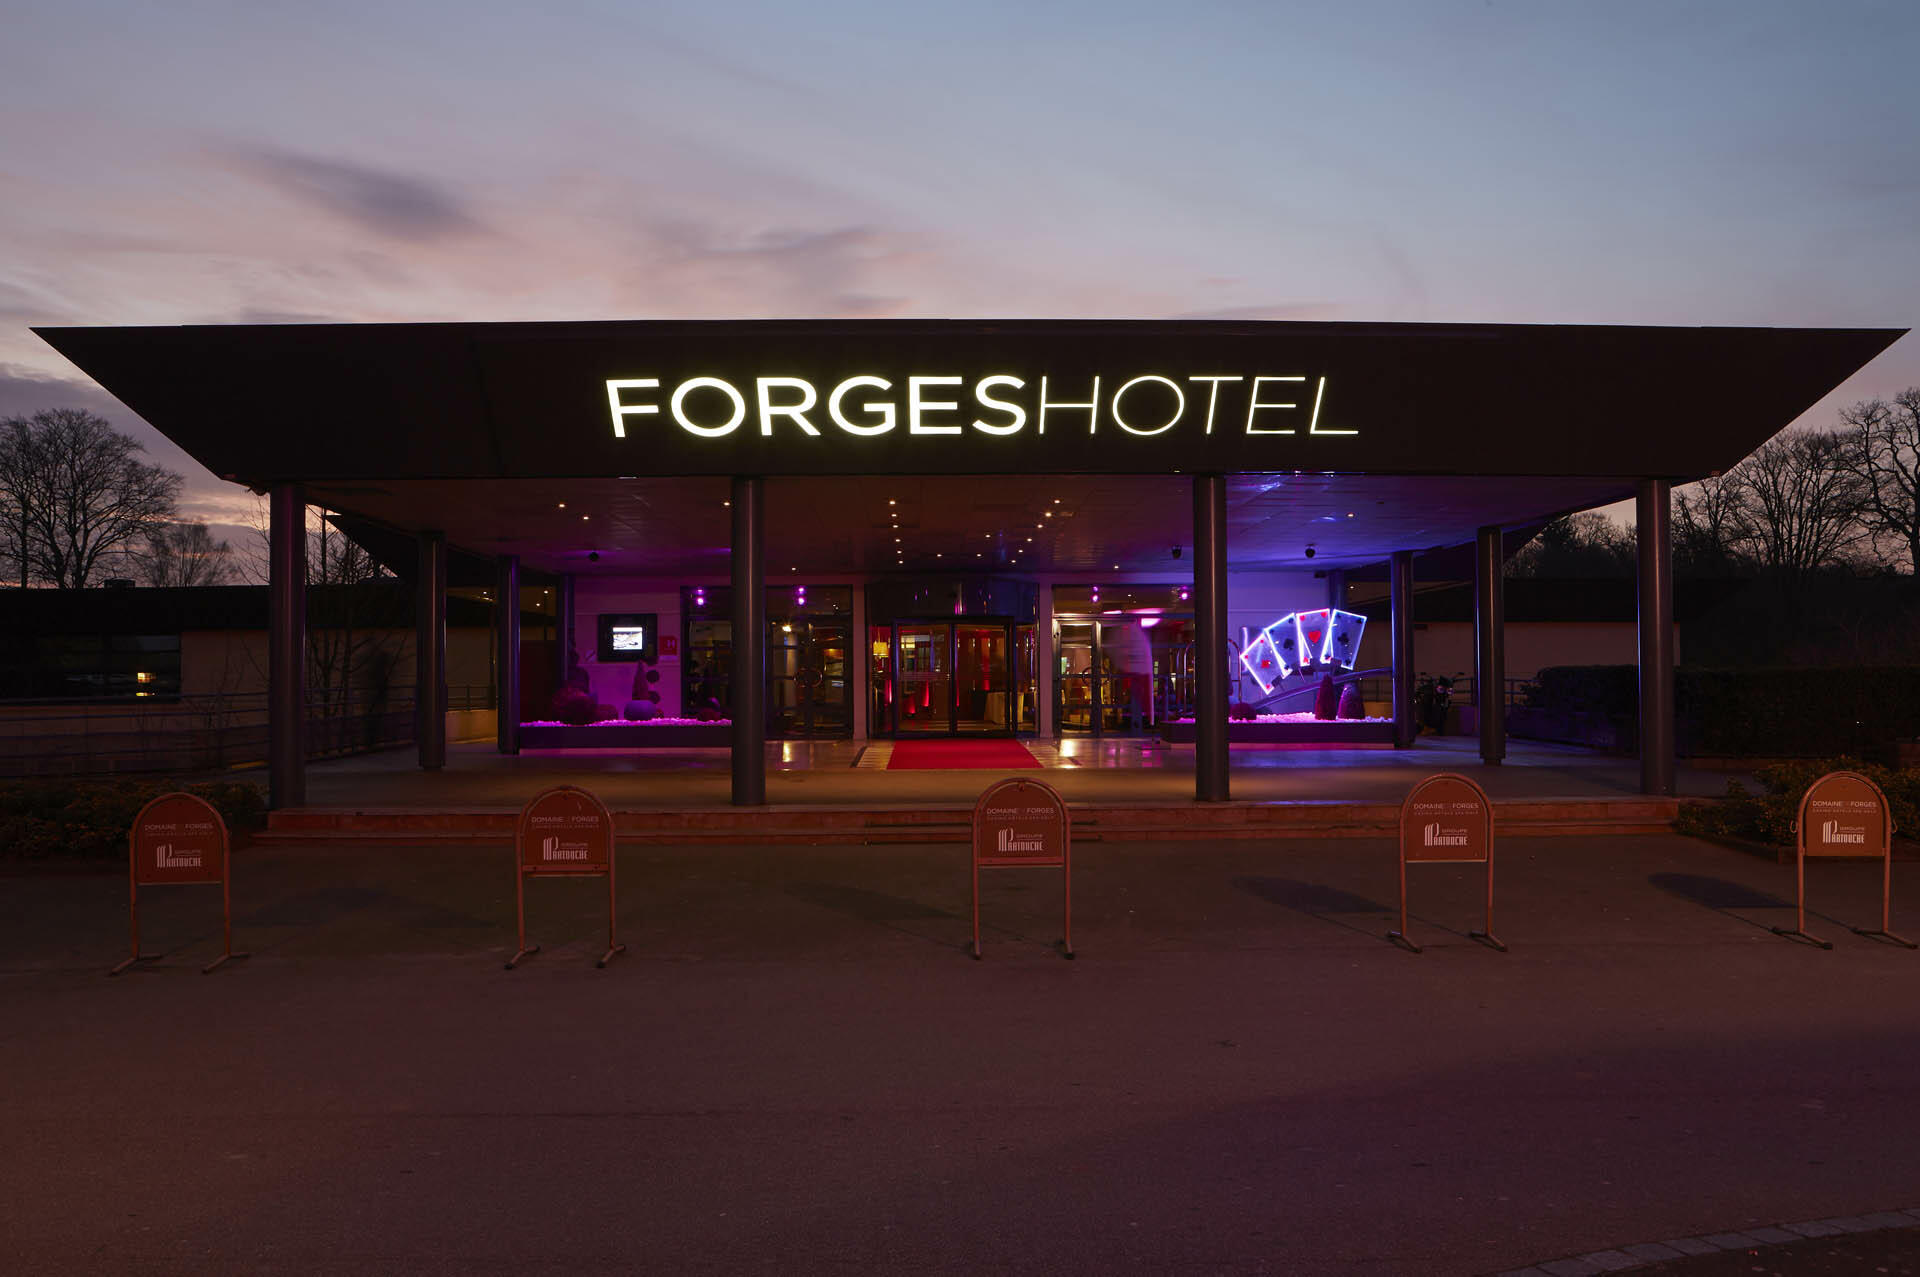 Forges Hotel in Forges-les-Eaux, France